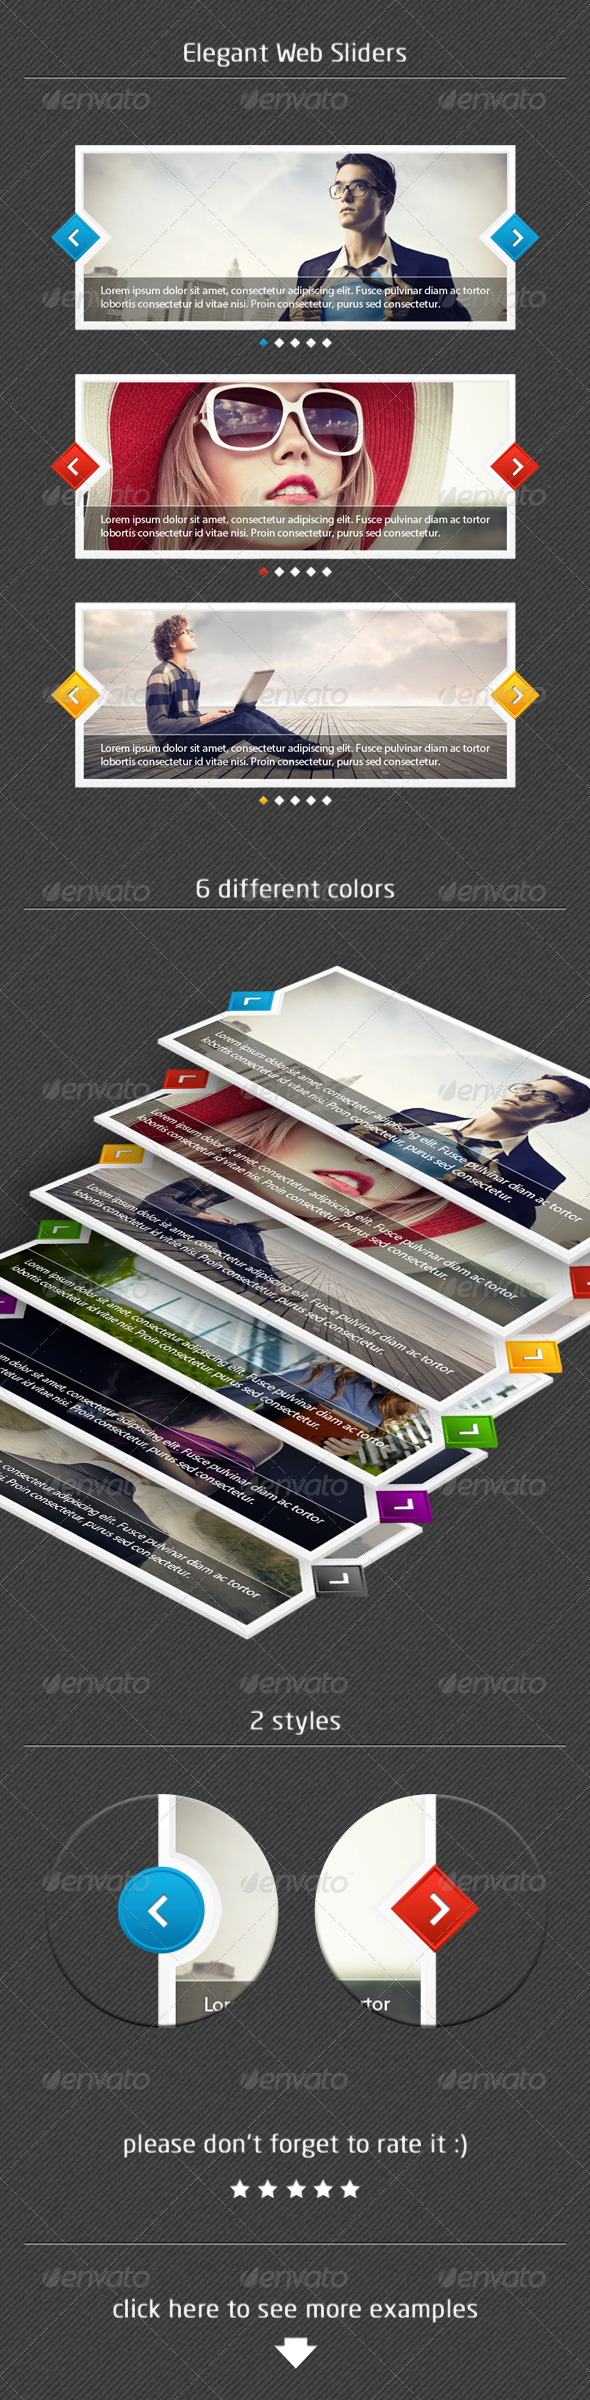 GraphicRiver Elegant Web Sliders 5909575